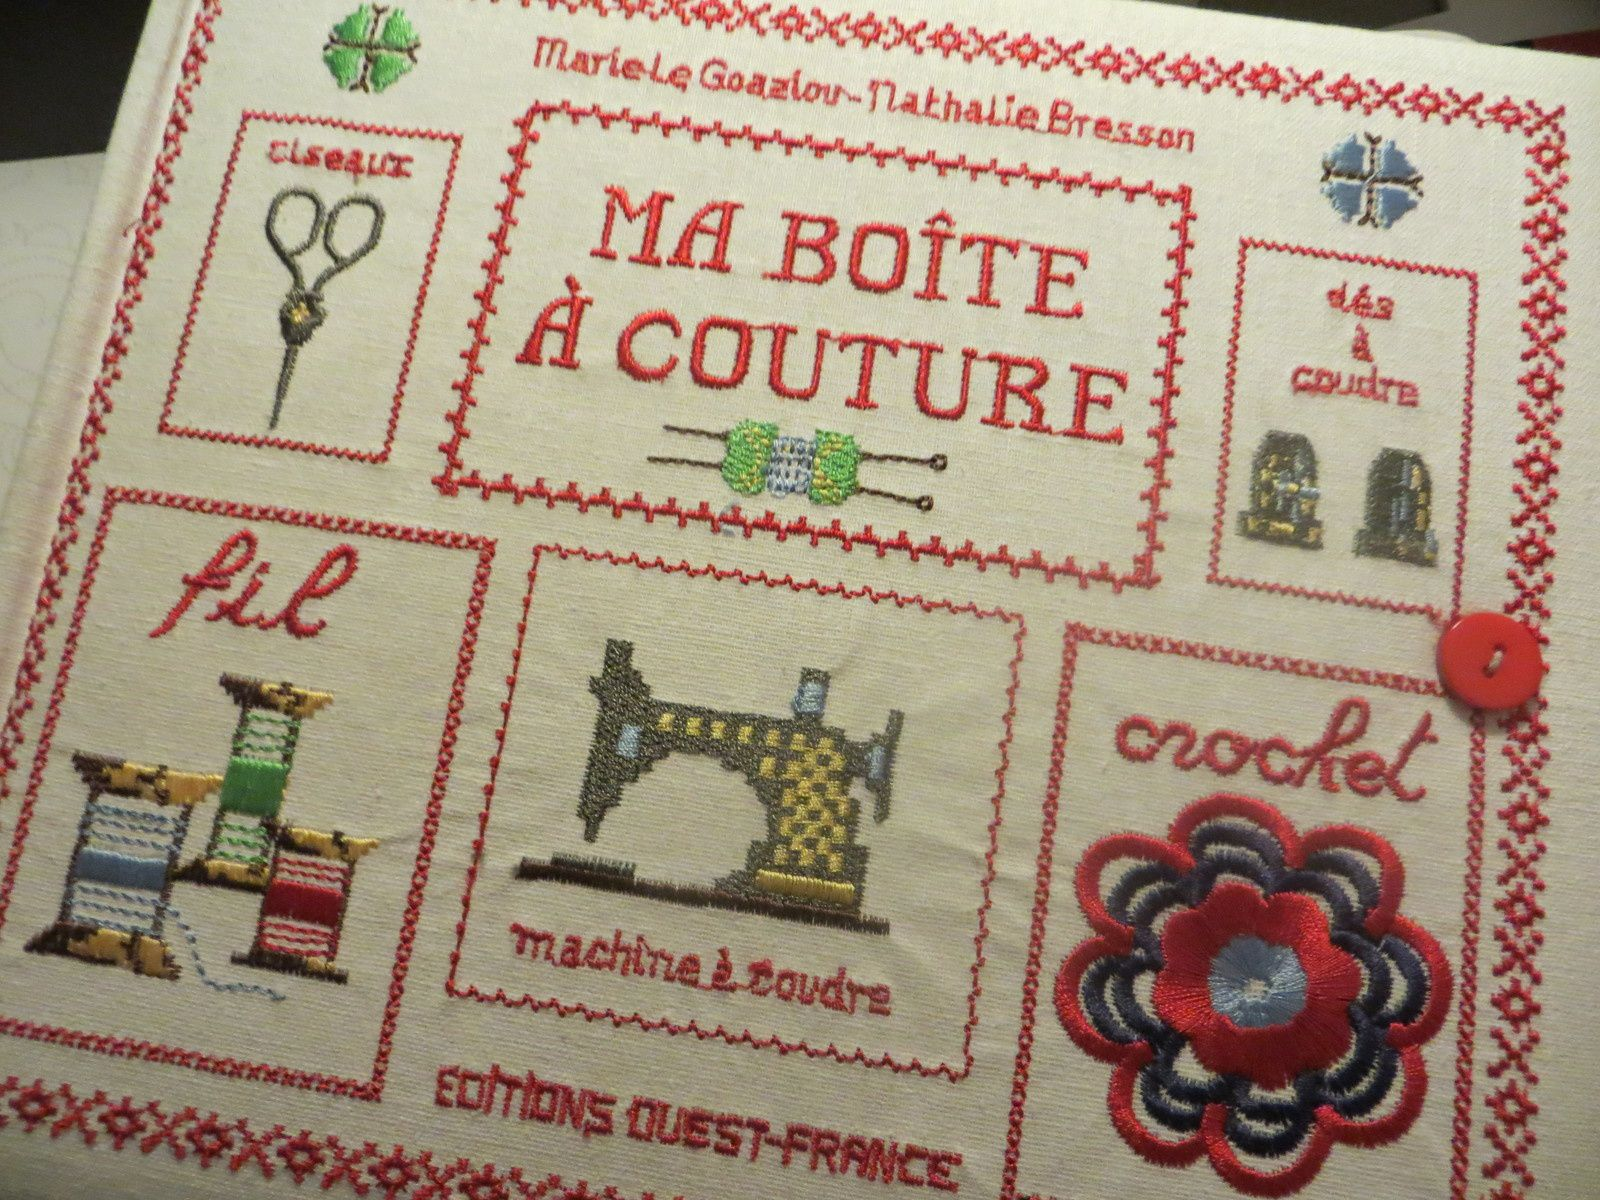 Ma boite couture made in francoise broderies for Couture a reims